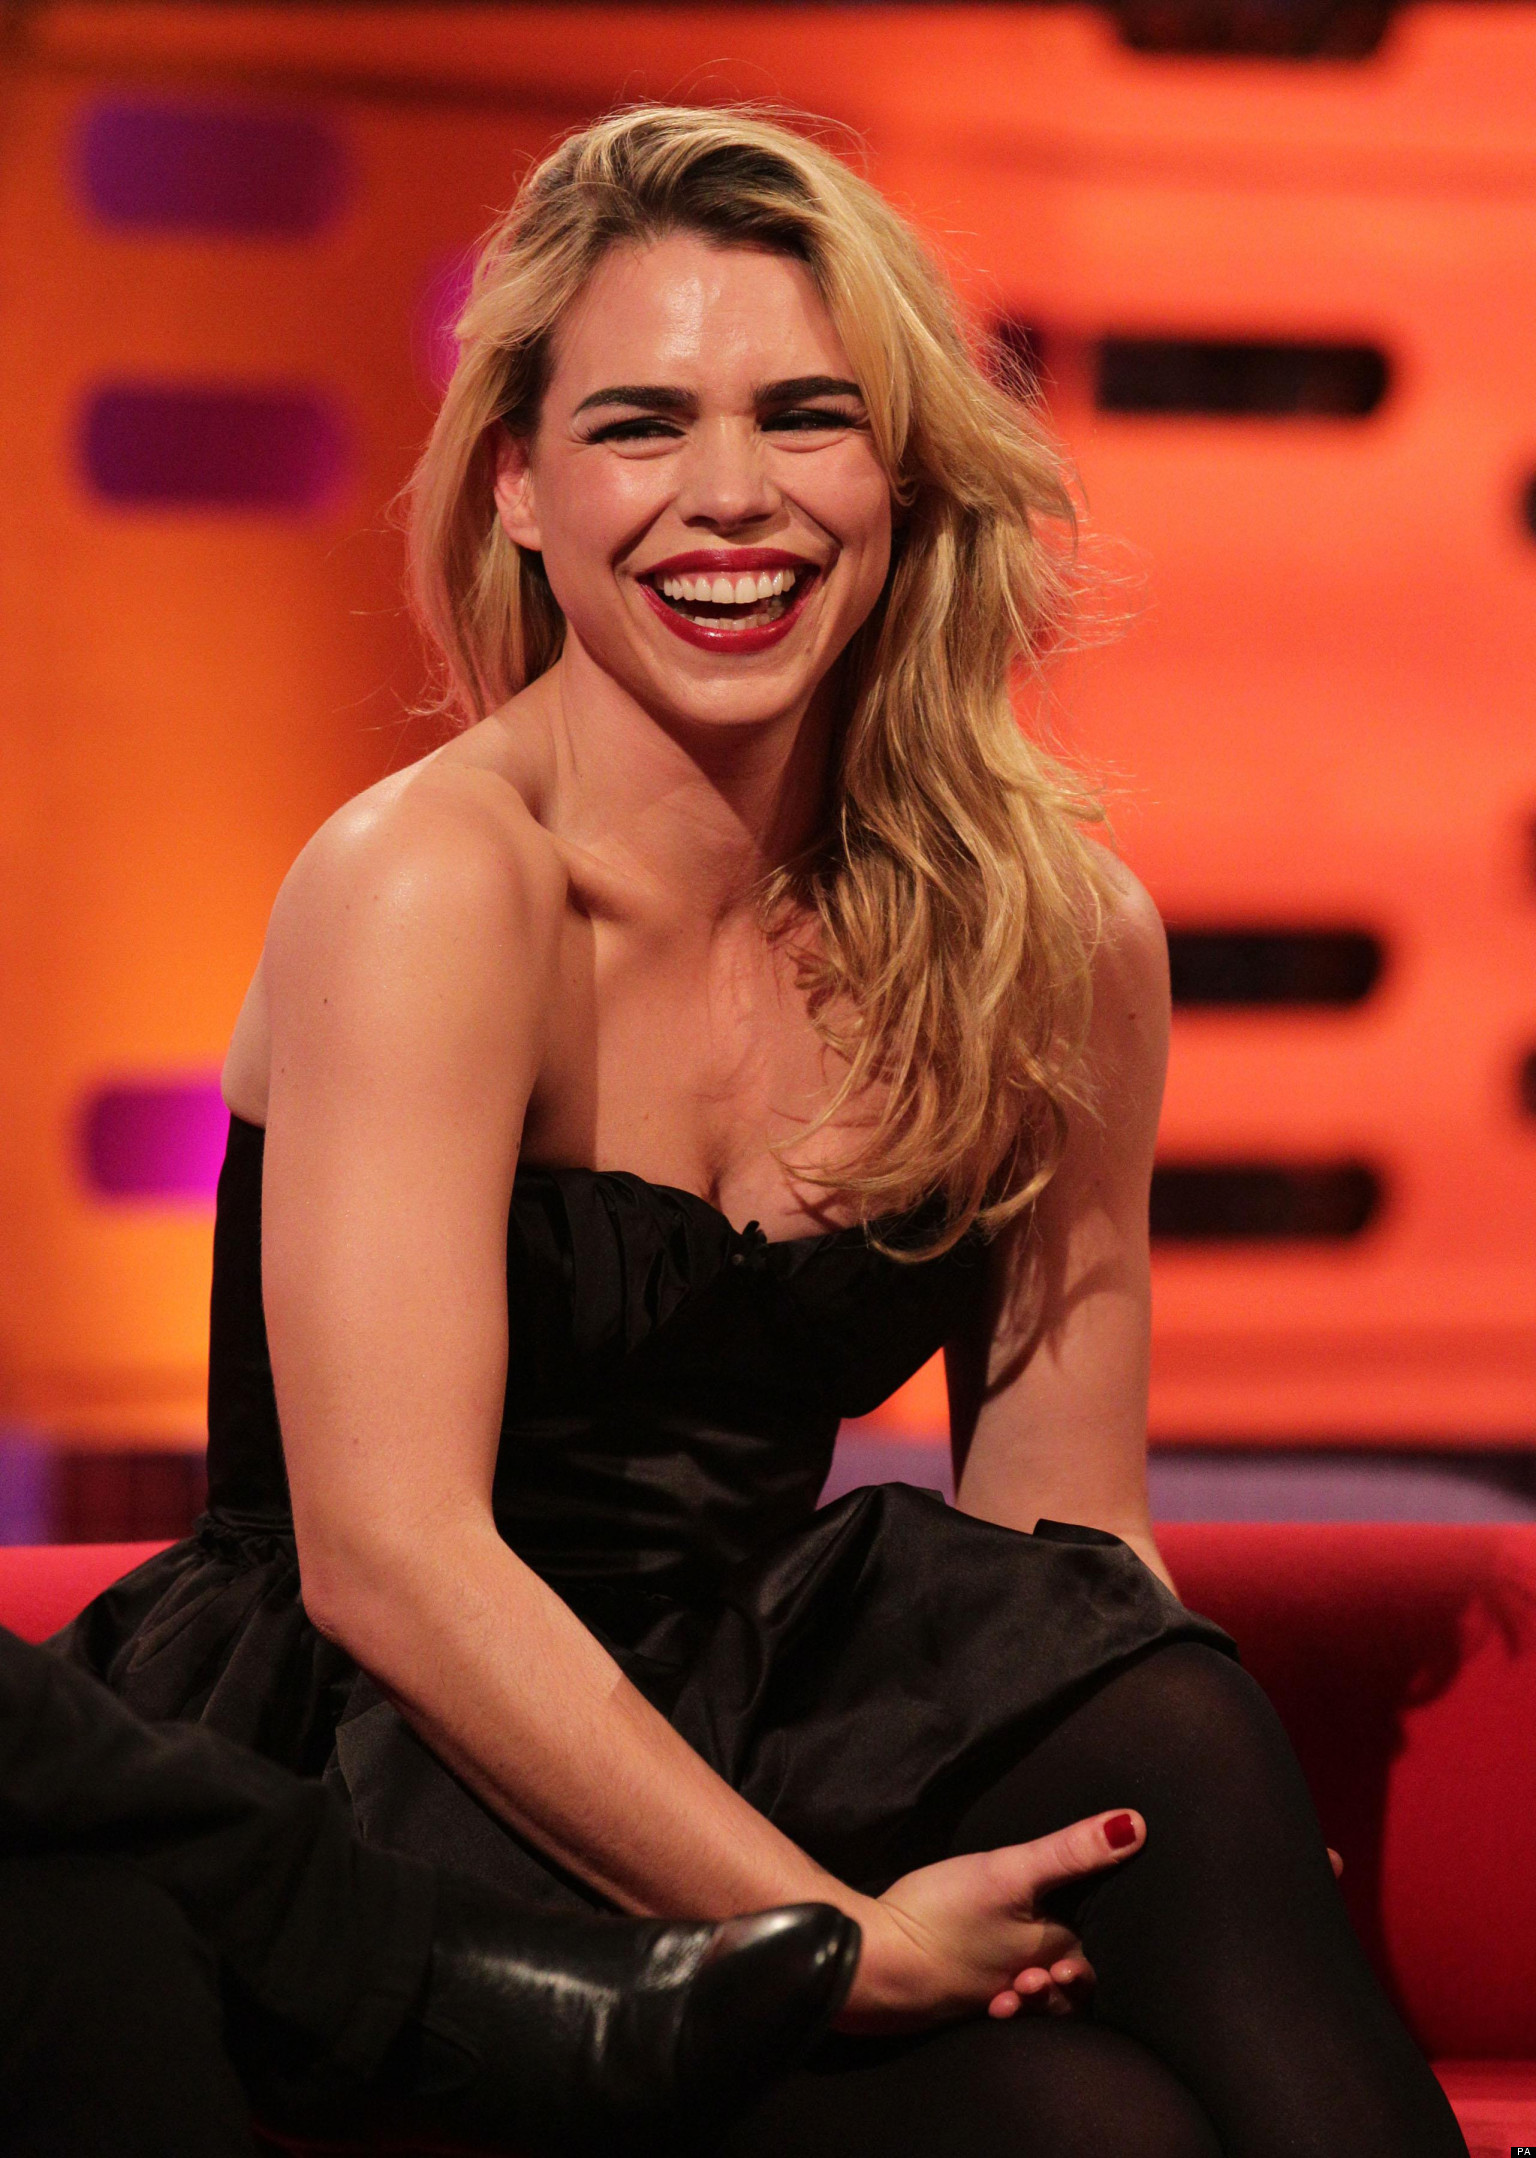 Billie Piper People Mistake Me For A Real Prostitute